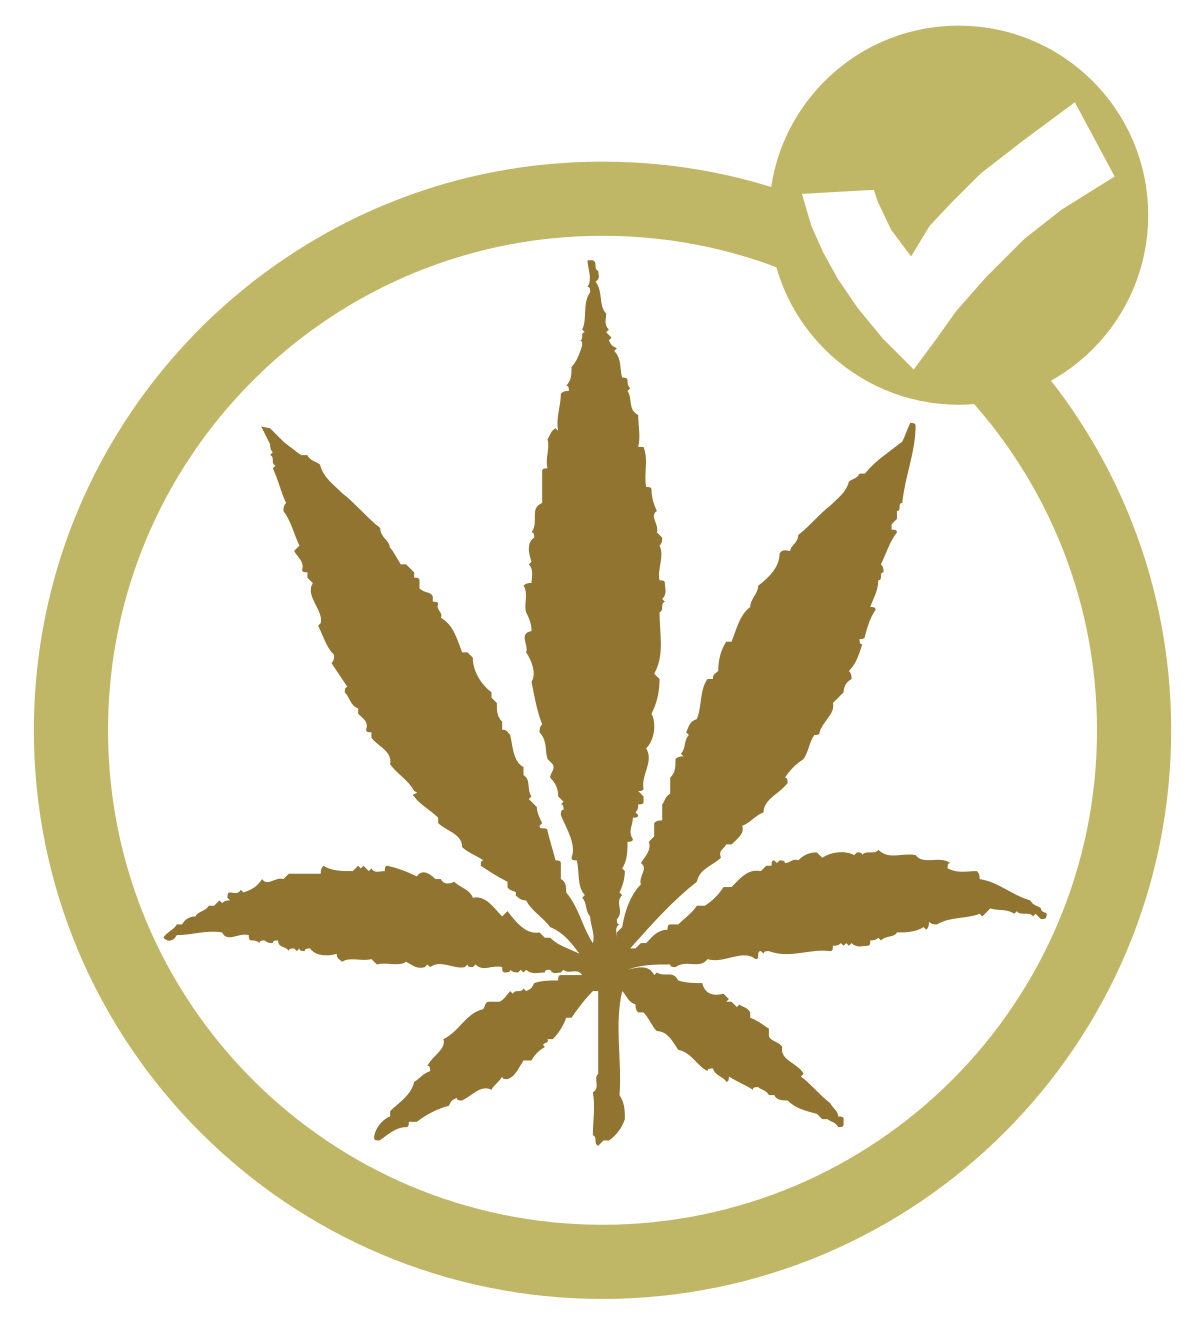 Marijuana clipart joint. Party canada wikipedia